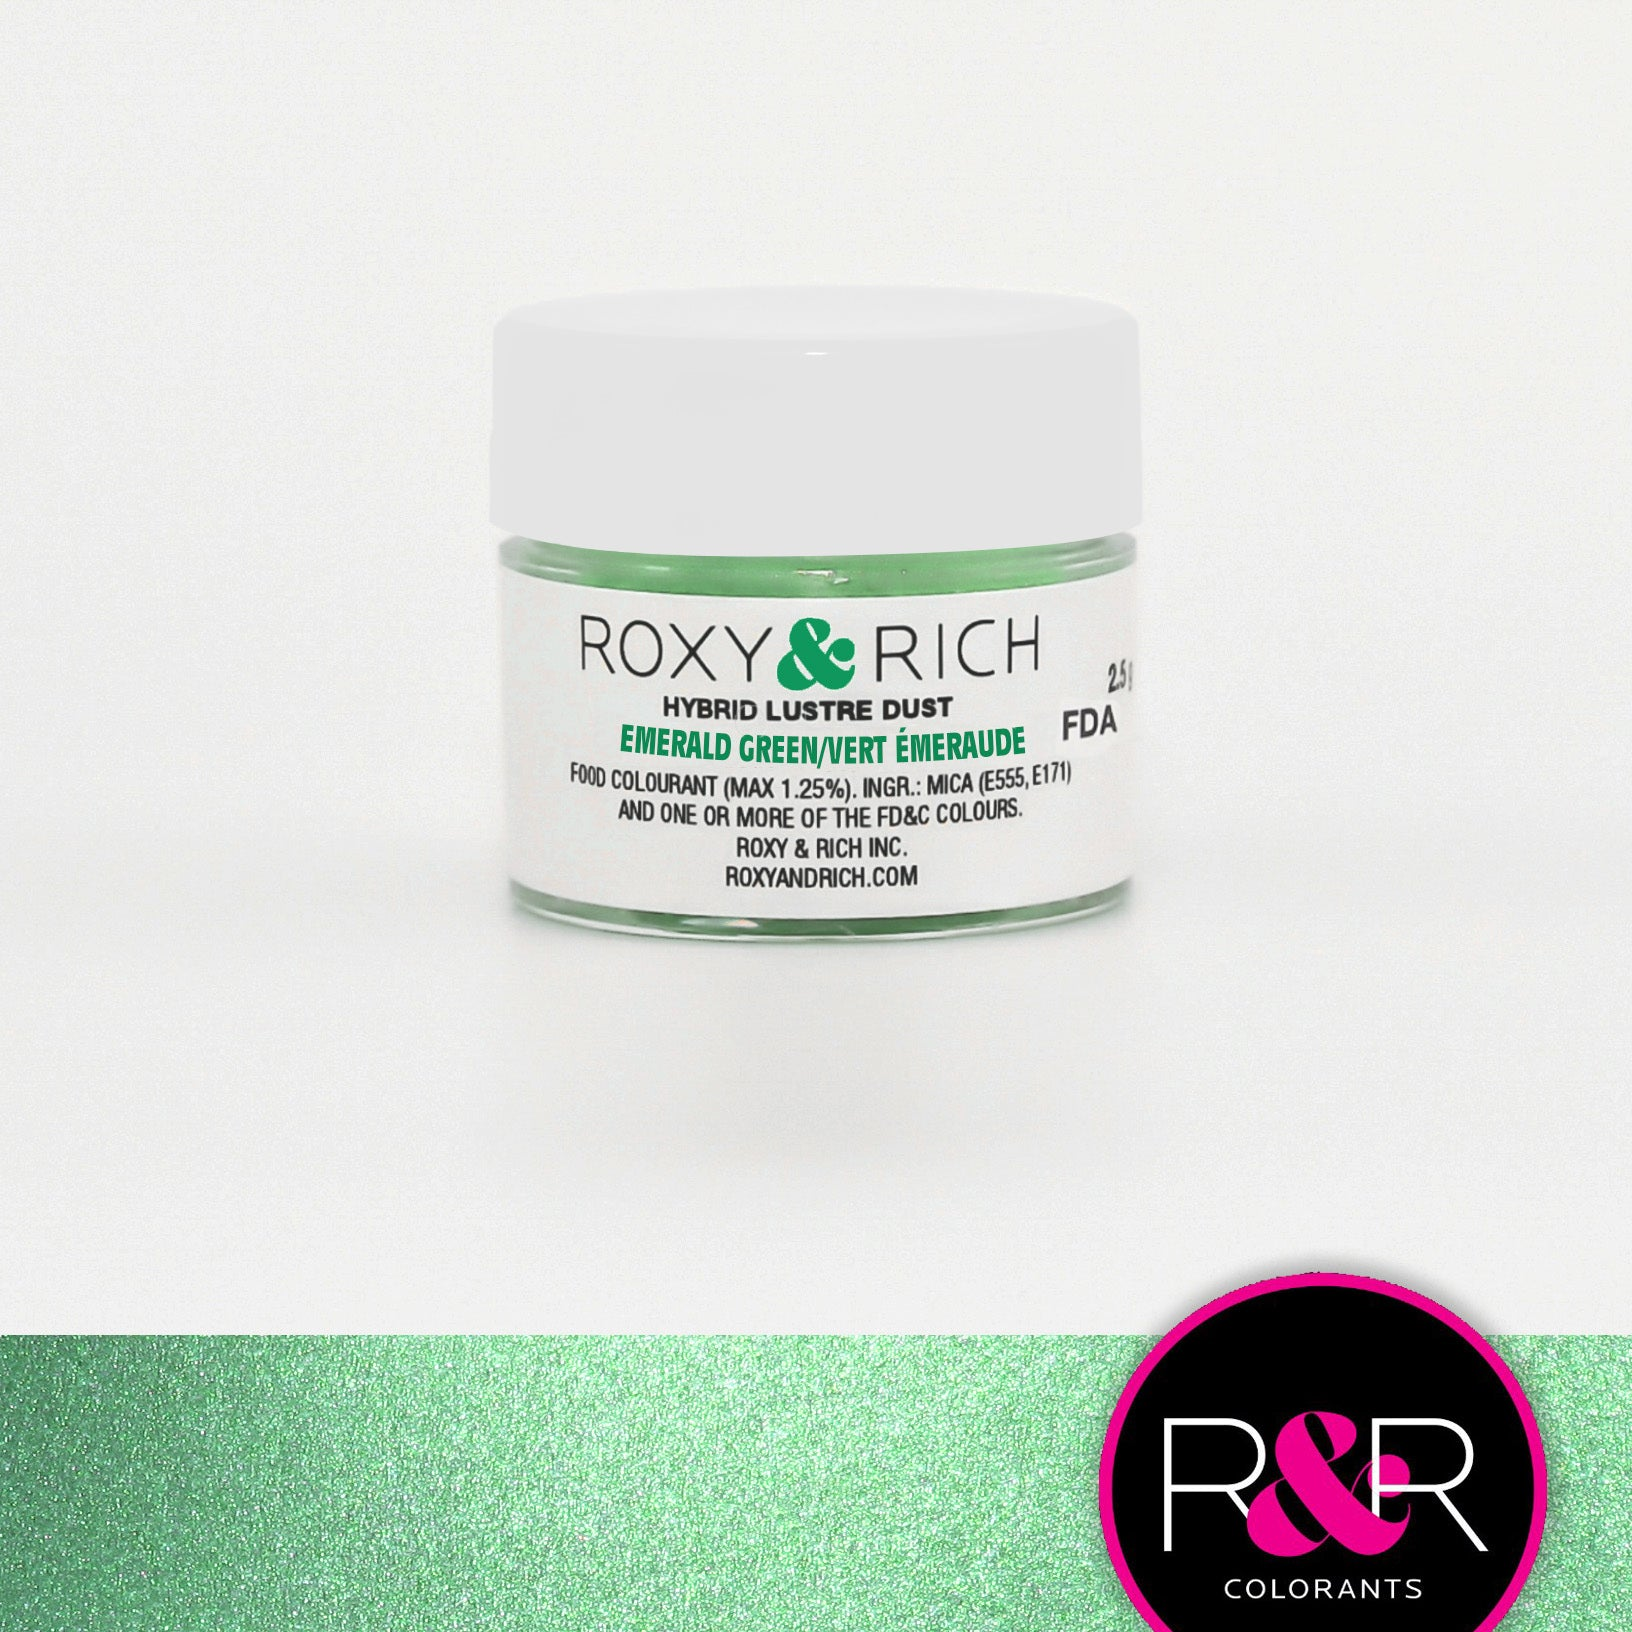 Roxy & Rich Hybrid Luster Dust Emerald Green (# L2-033) - 2.5 G